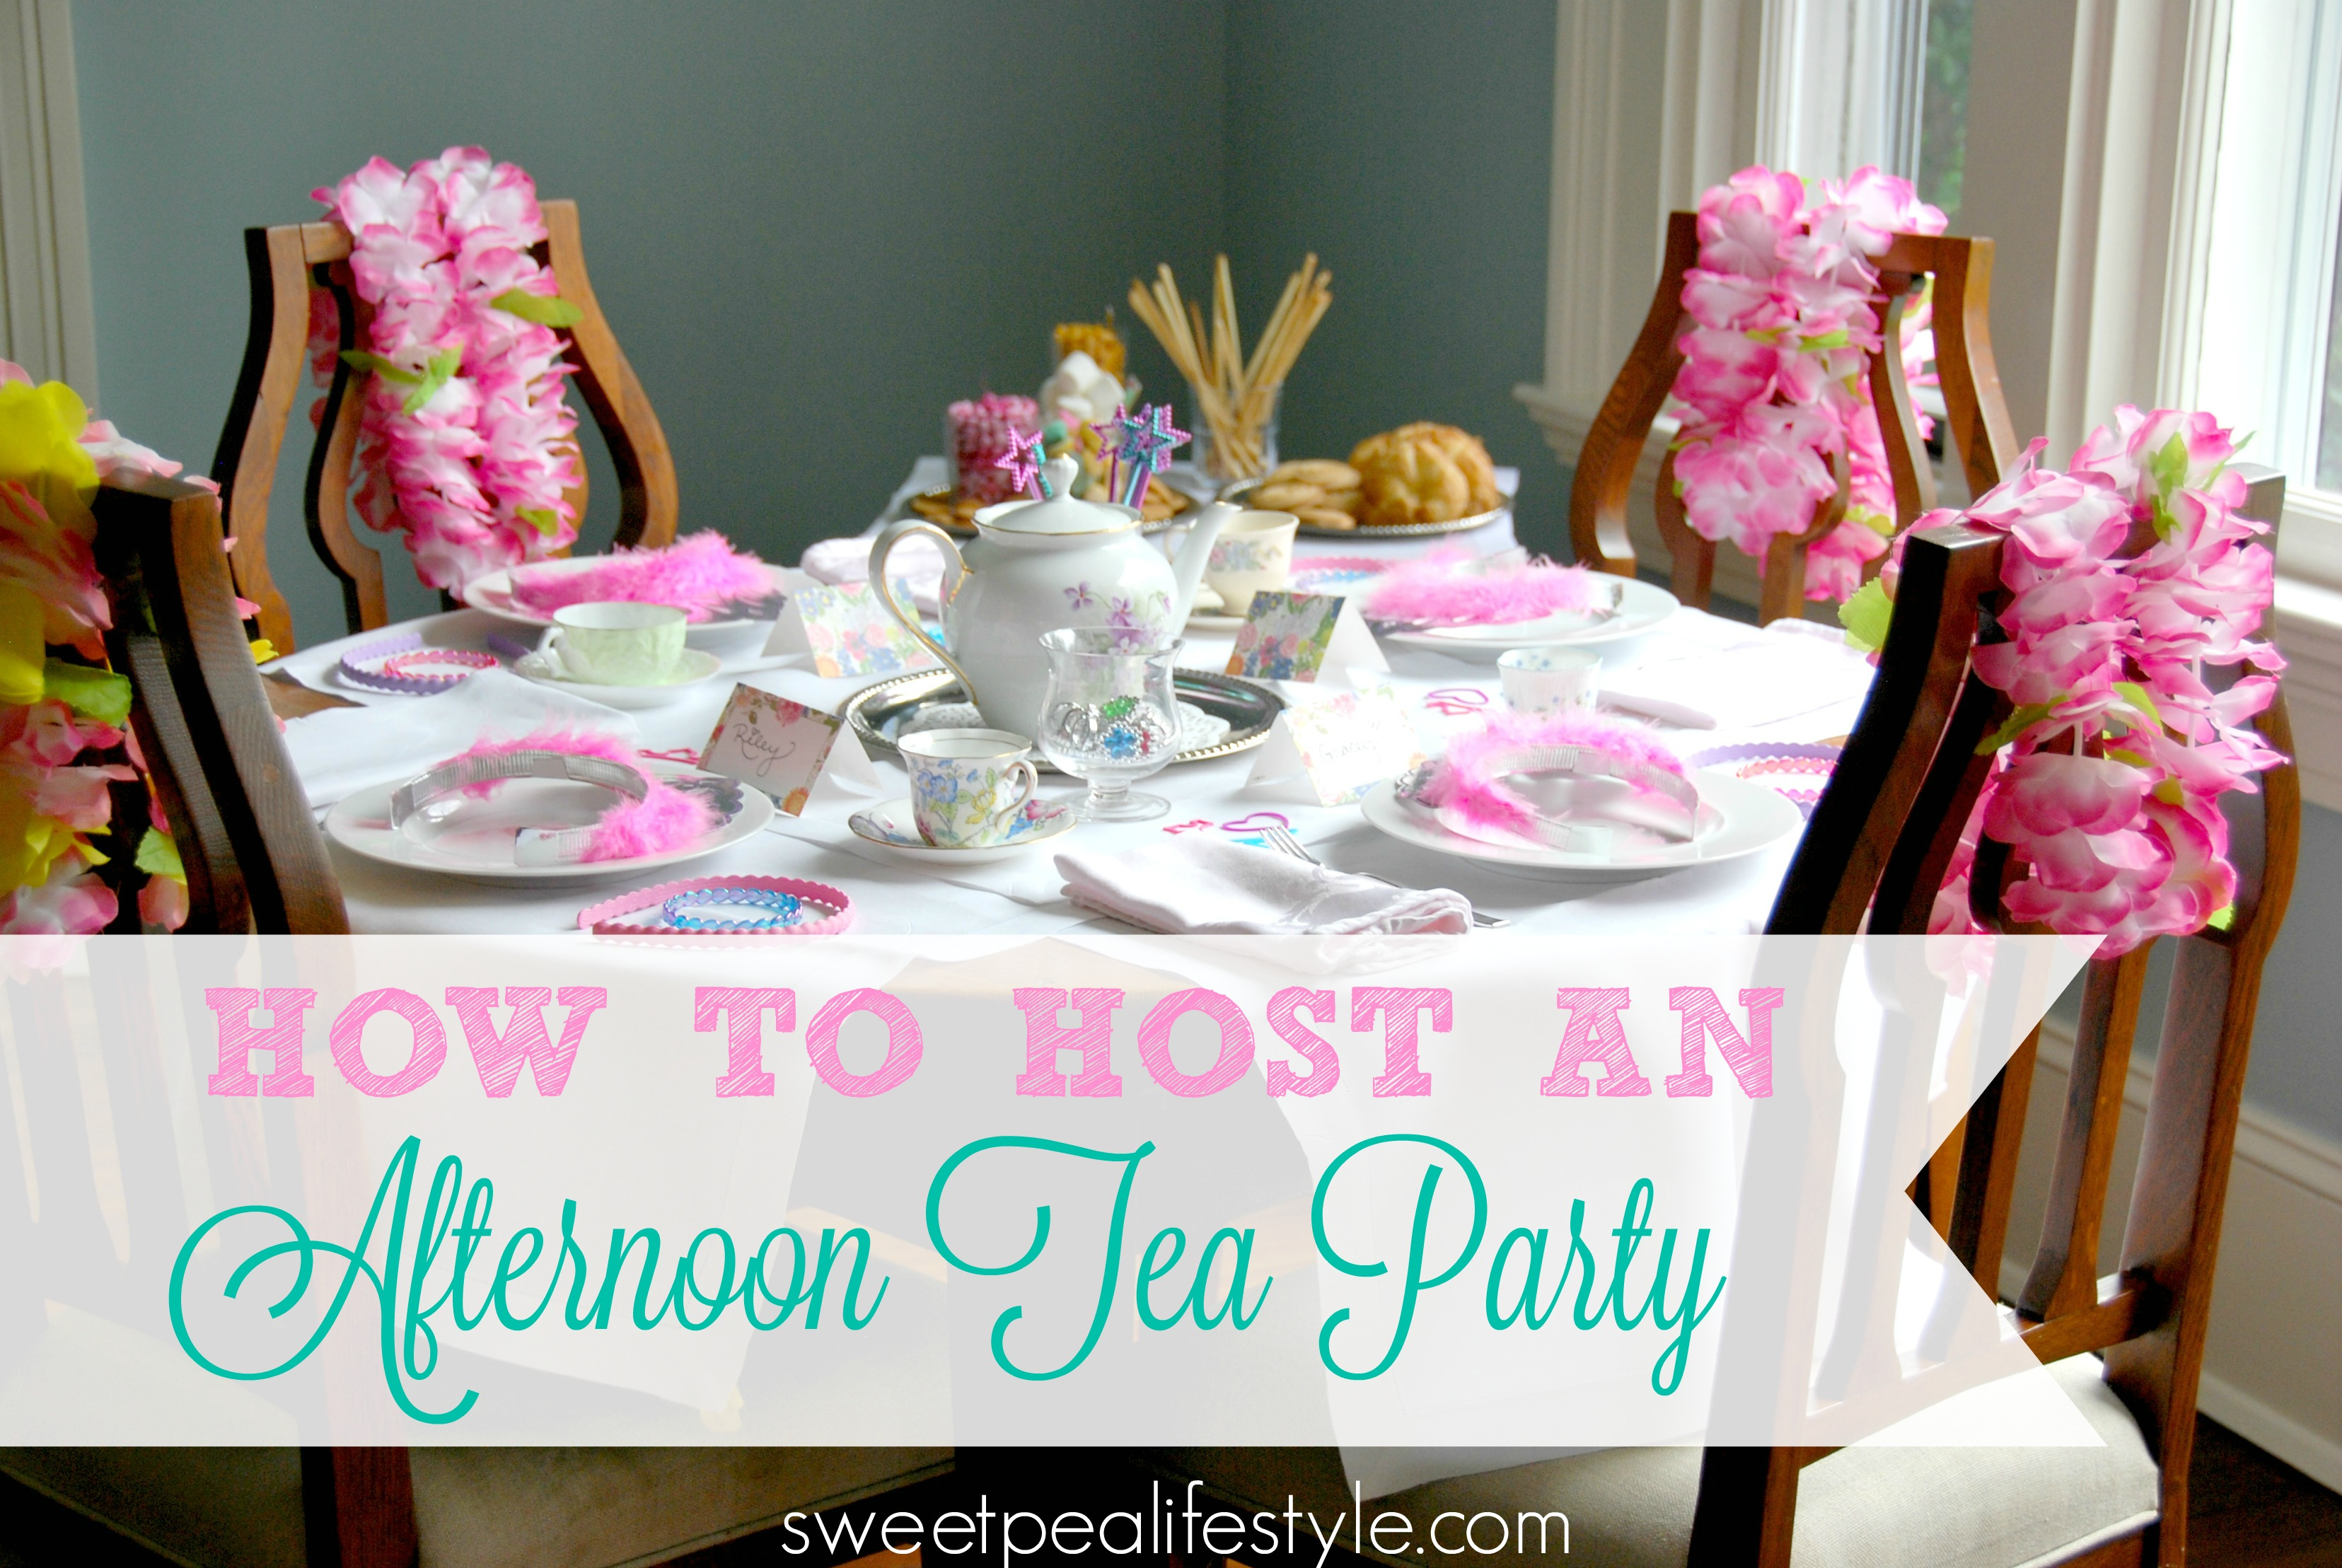 How to Host an Afternoon Tea Party